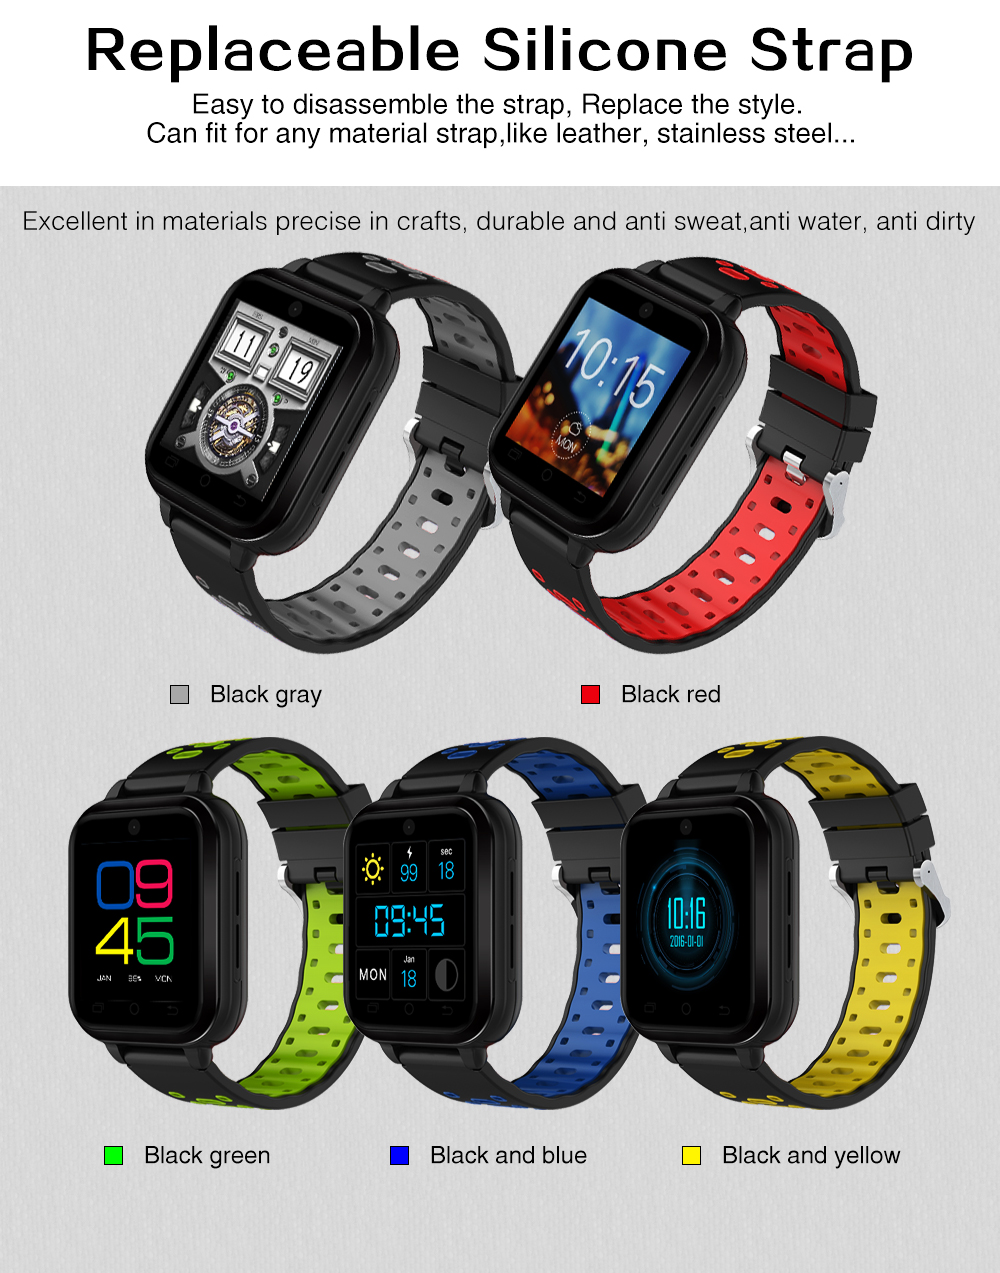 Torntisc Q1 Pro 4G smartwatch Android 6.0 MTK6737 Quad Core 1GB8GB Watch Phone Support Blood pressure Heart Rate monitor Sim Card WIFI GPS Wristwatch for Android (10)